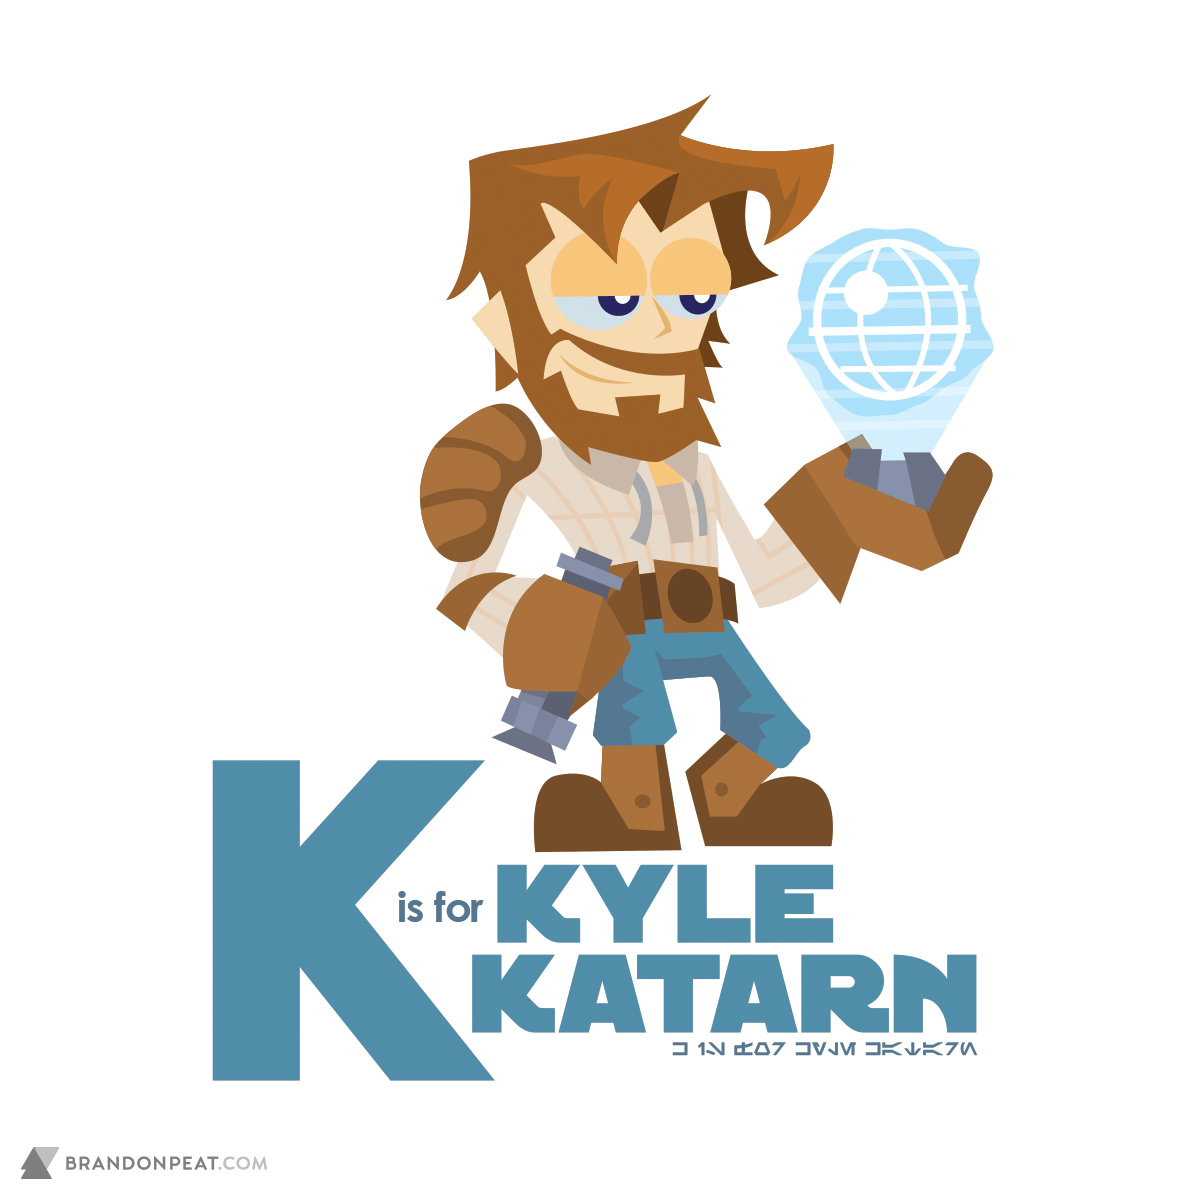 A Is For Ackbar: K Is For Kyle Katarn